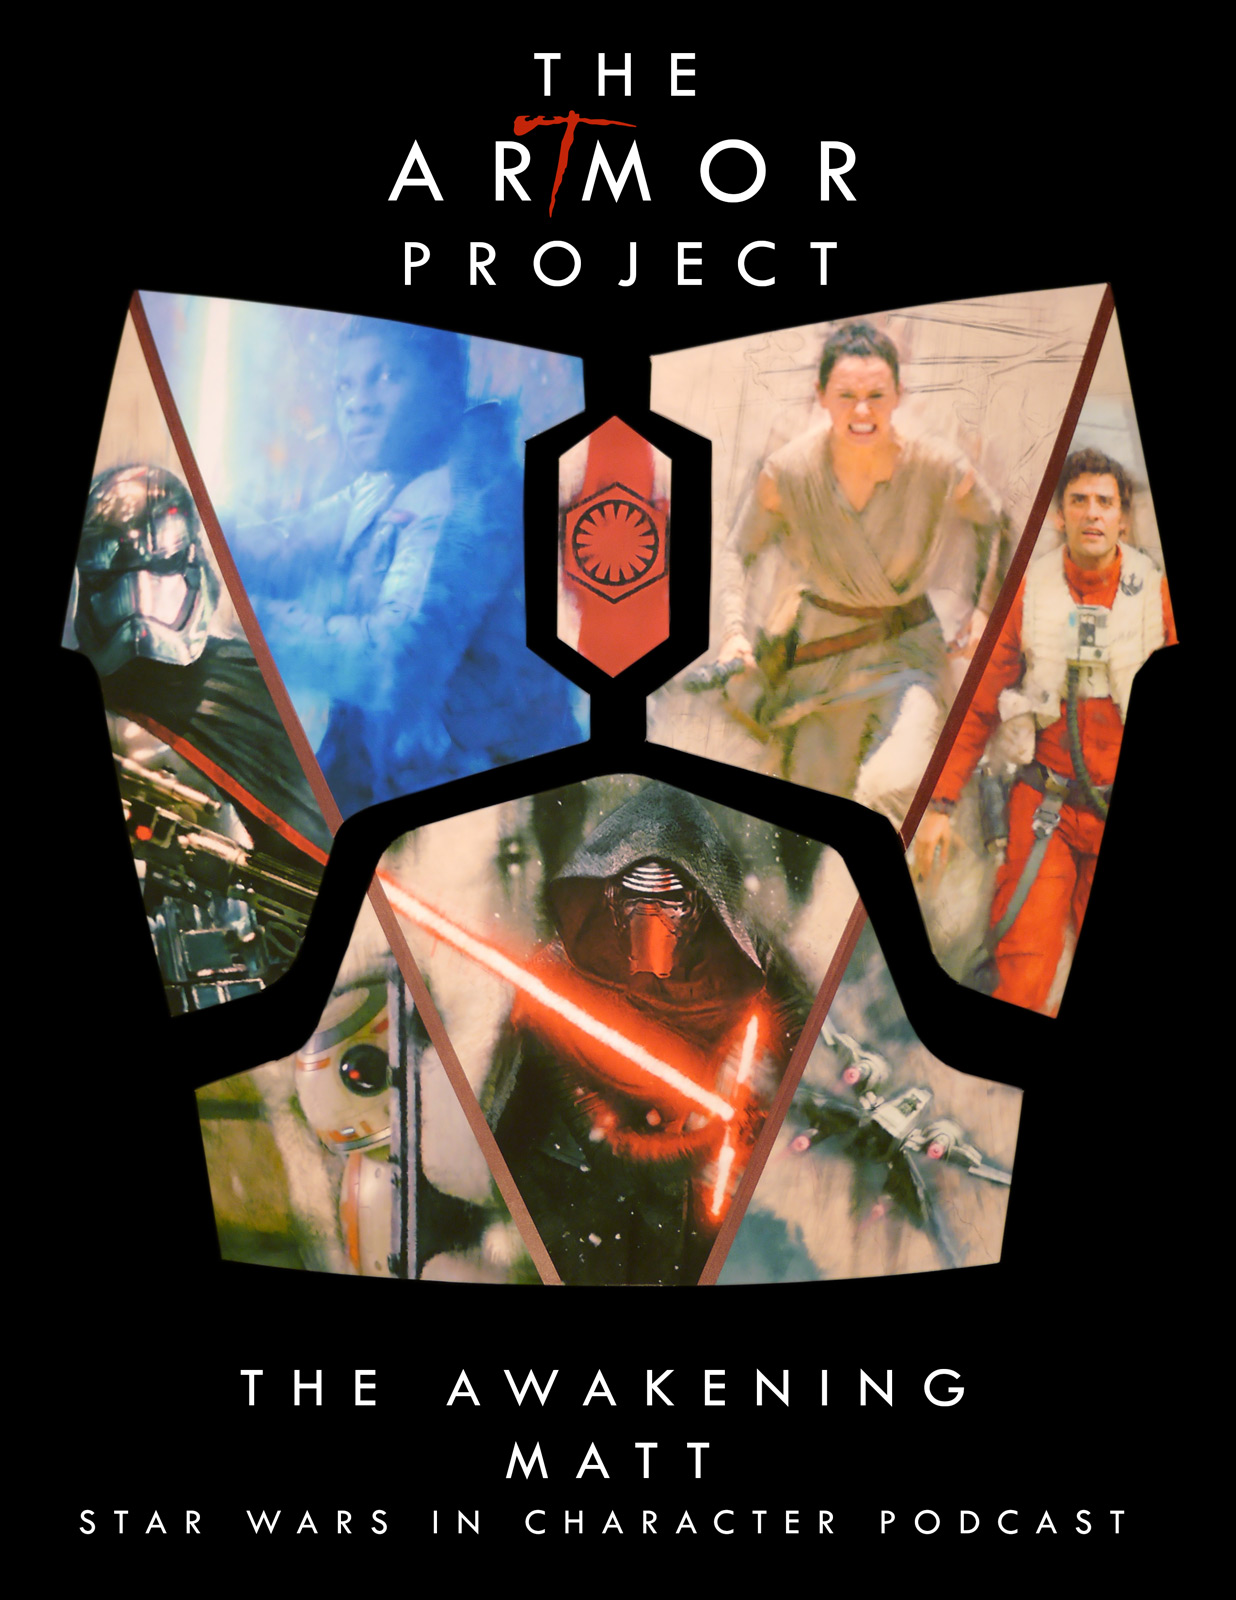 ArTmor 2015: The Awakening